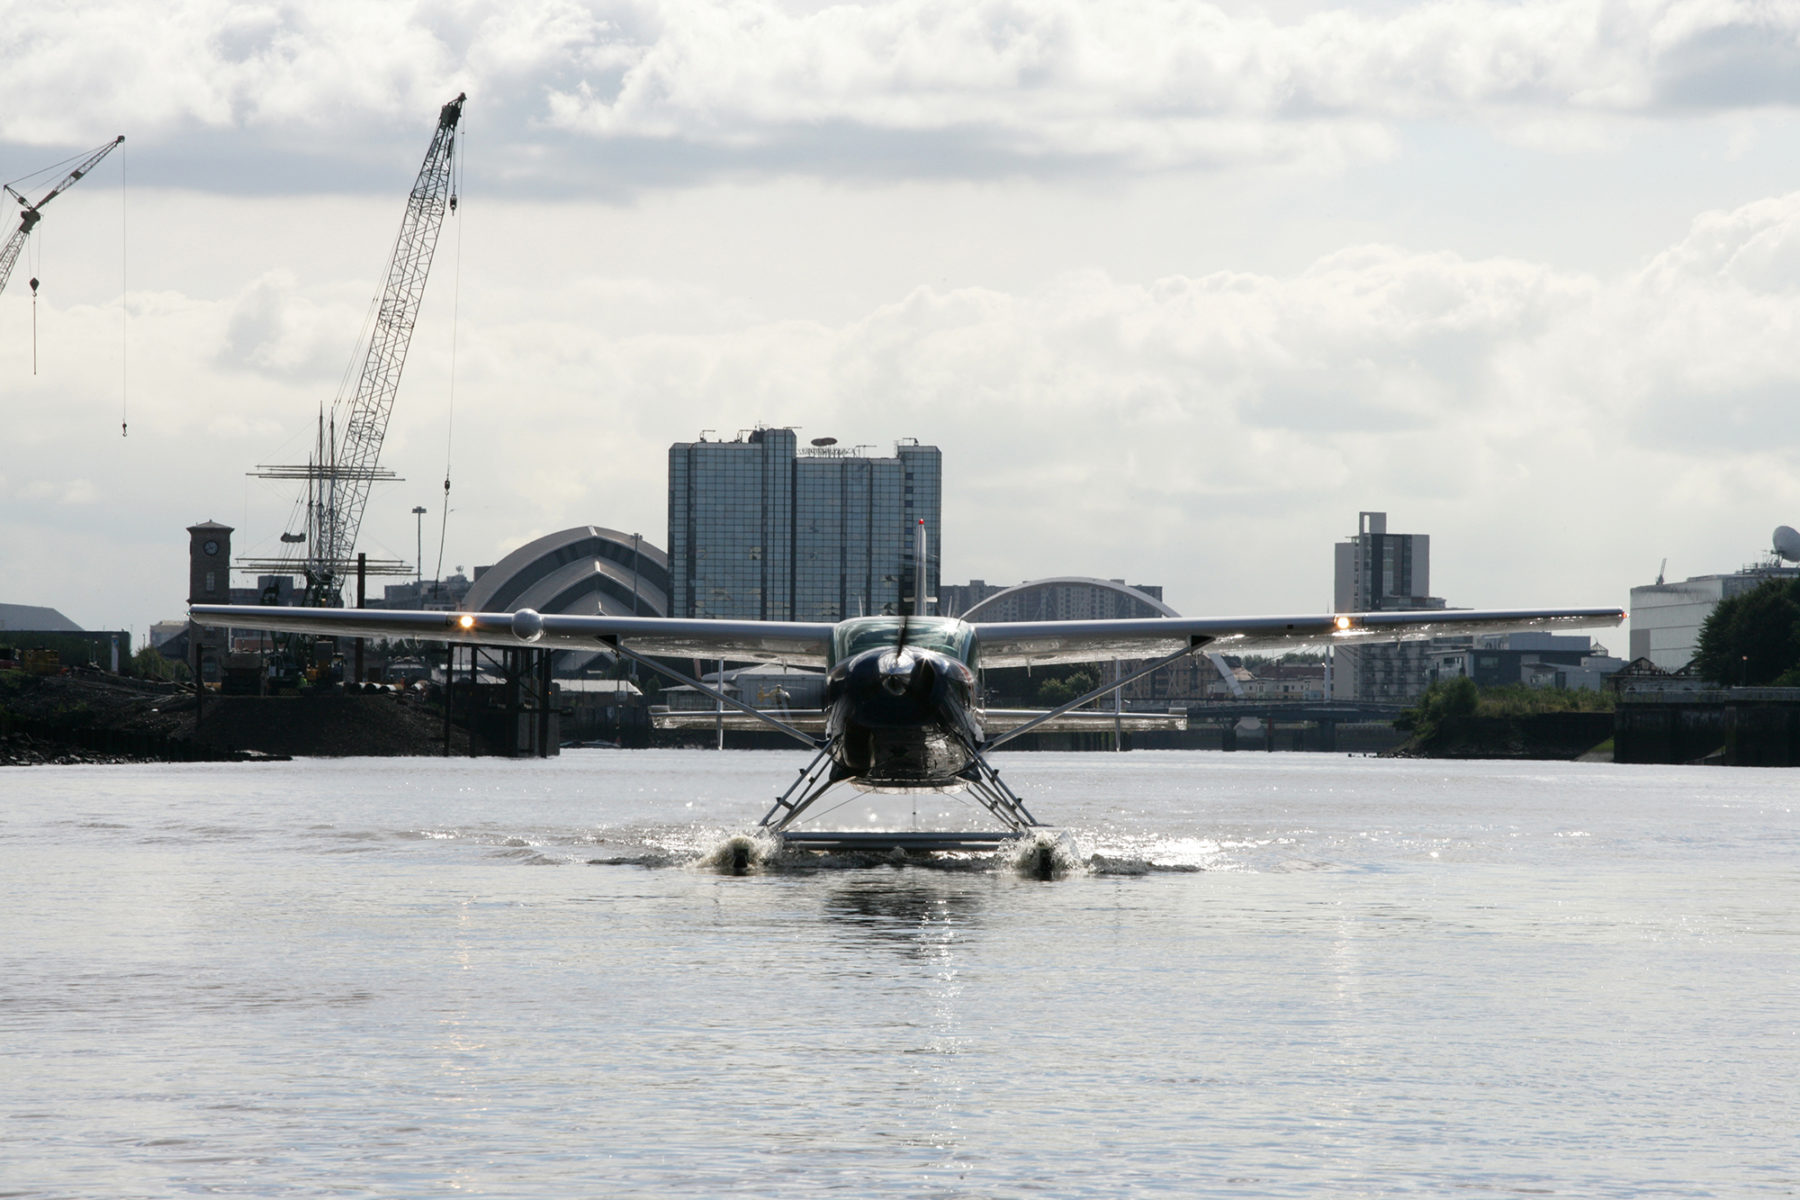 Seaplane, Clyde | by McAteer Photograph